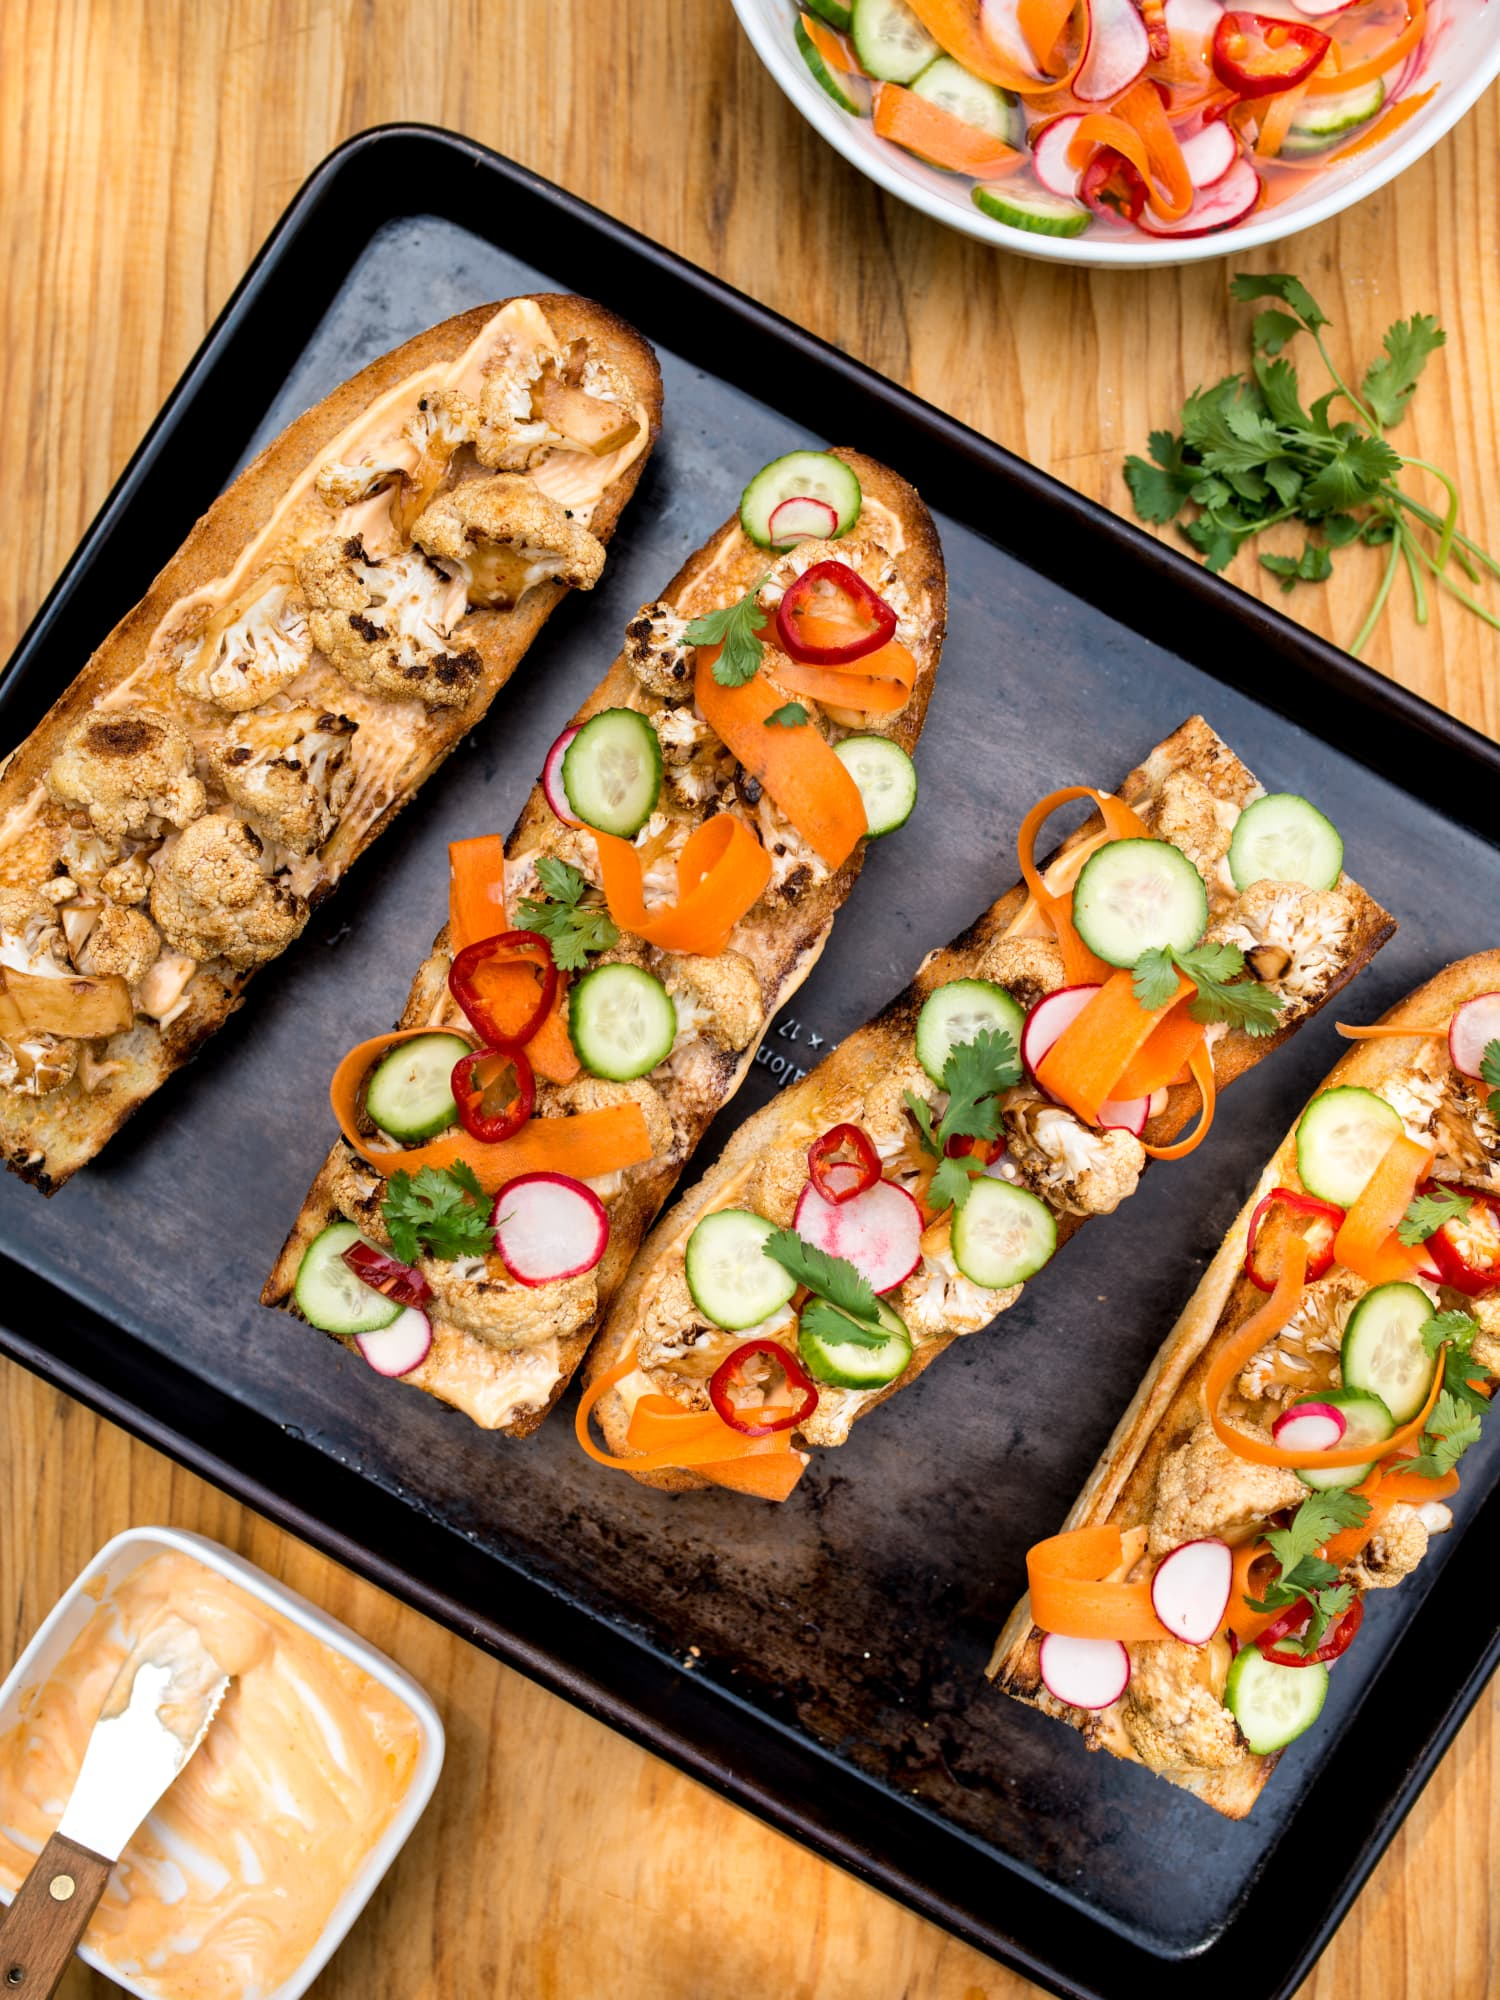 20 Ways to Turn a Big Batch of Grilled Veggies into Delicious Summer Dinners